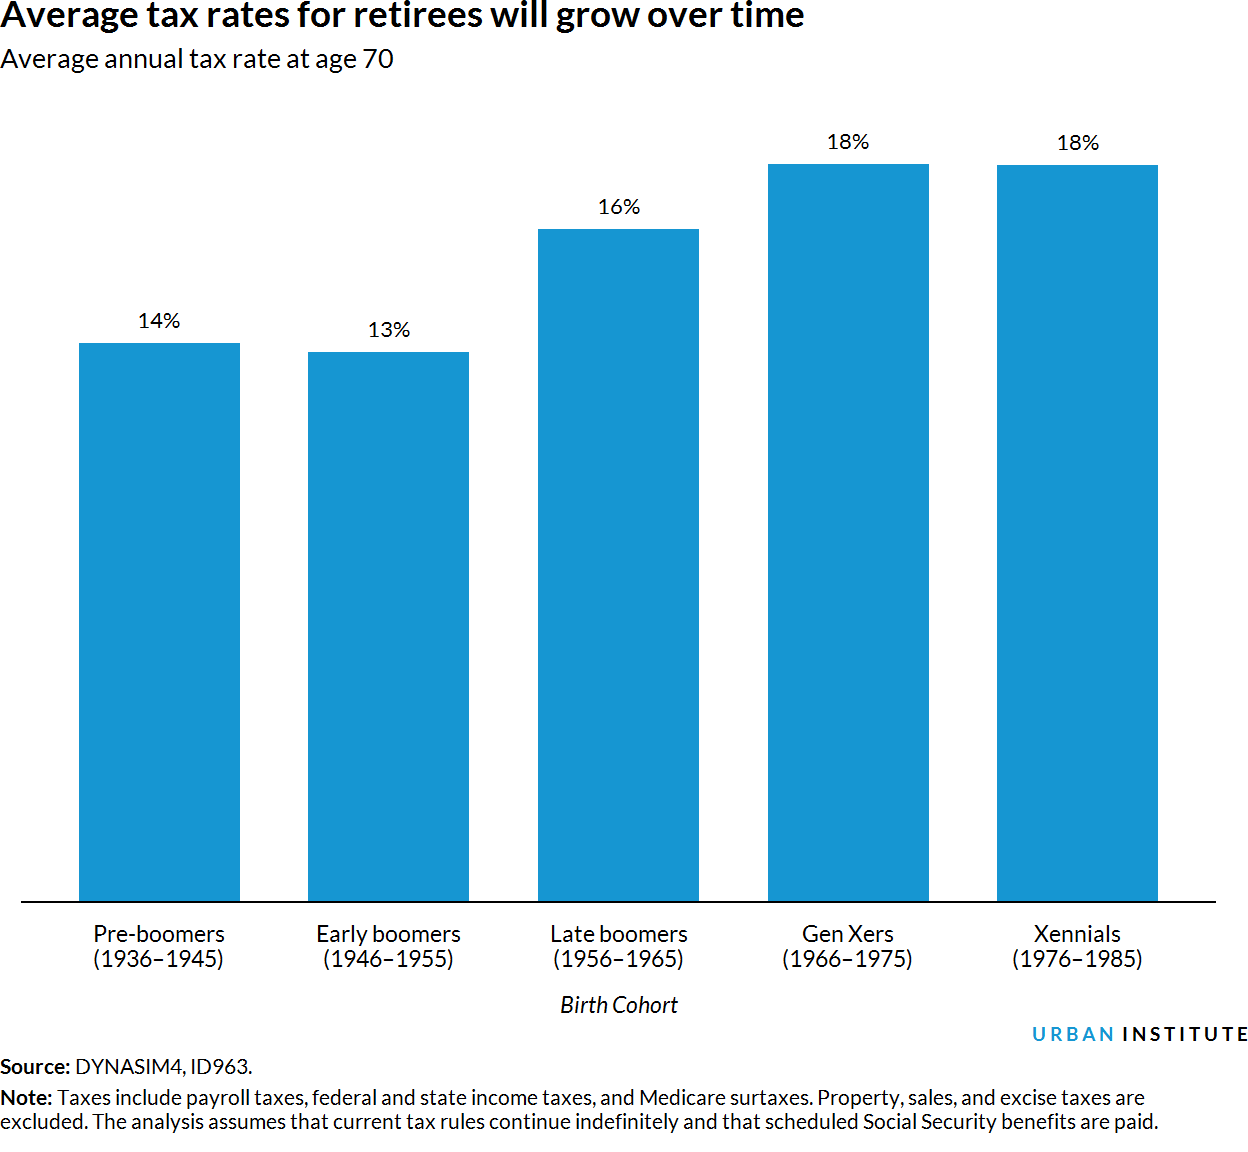 Bar chart of average tax rates for retirees by cohort